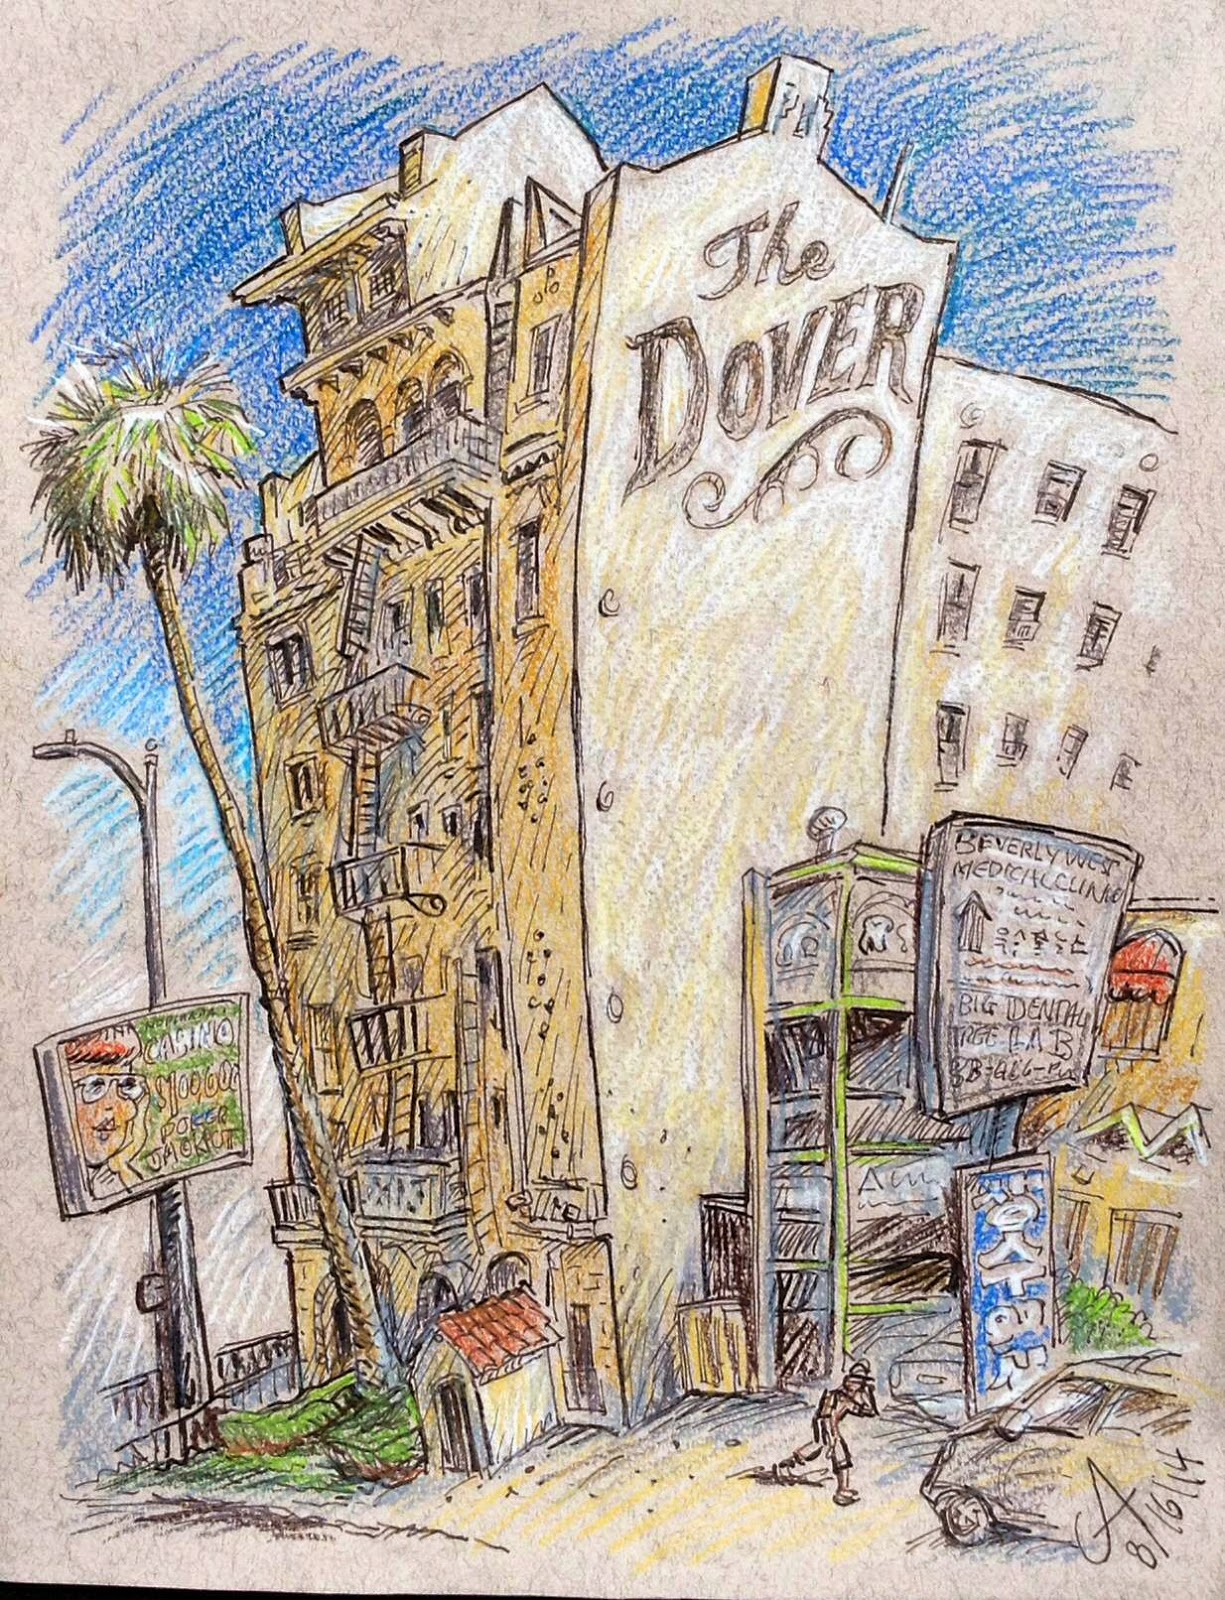 http://avidortravelblog.blogspot.com/2014/08/sketching-all-way-to-los-angeles-on.html